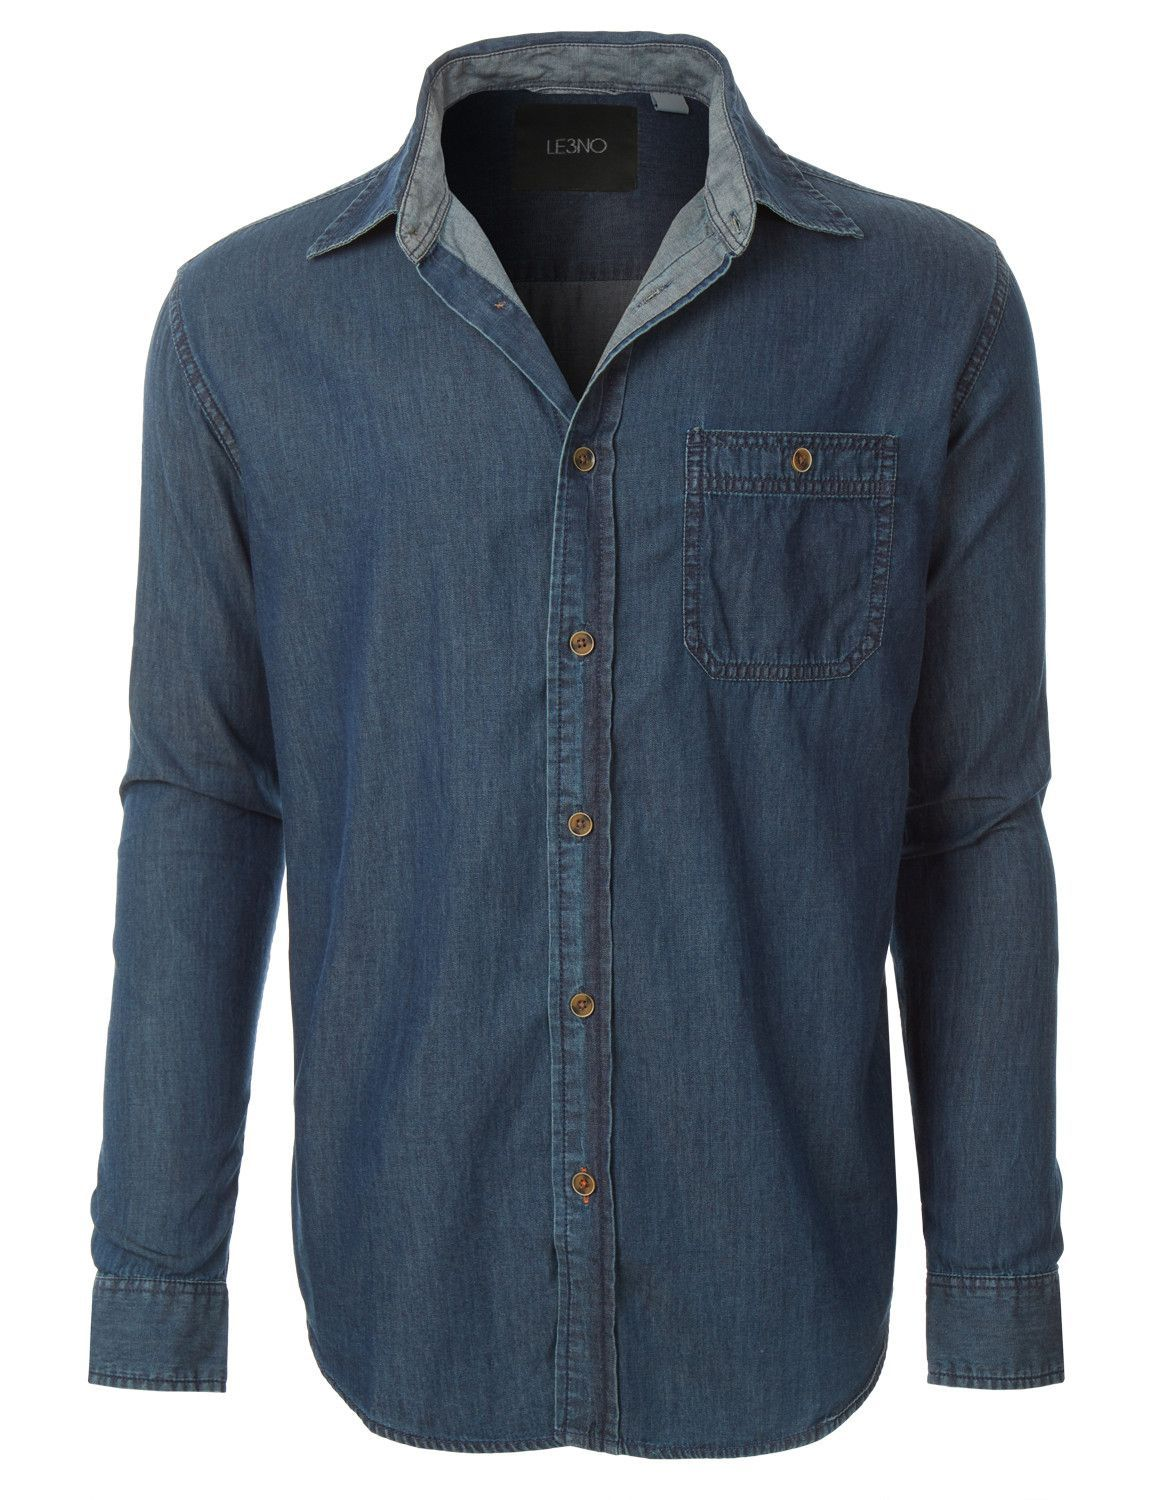 cc2a819917 This vintage long sleeve button down denim shirt offers the authentic